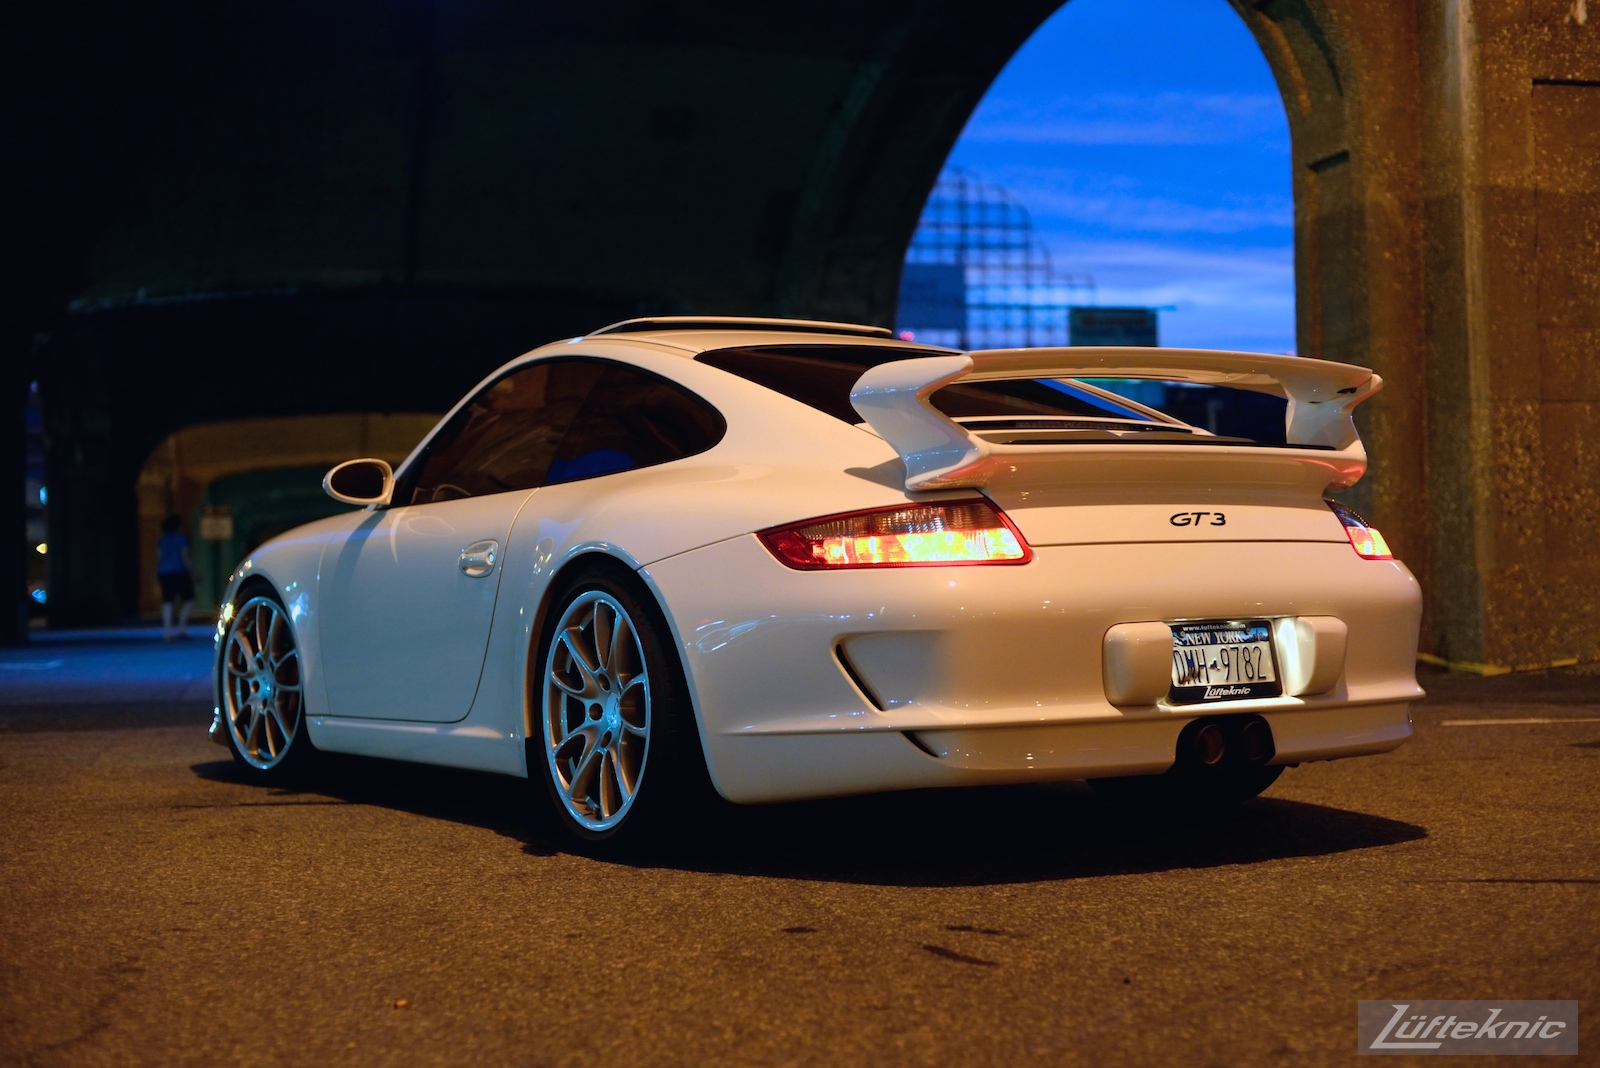 A white 997 GT3 viewed from behind under the 7 train bridge on Queens blvd at night.